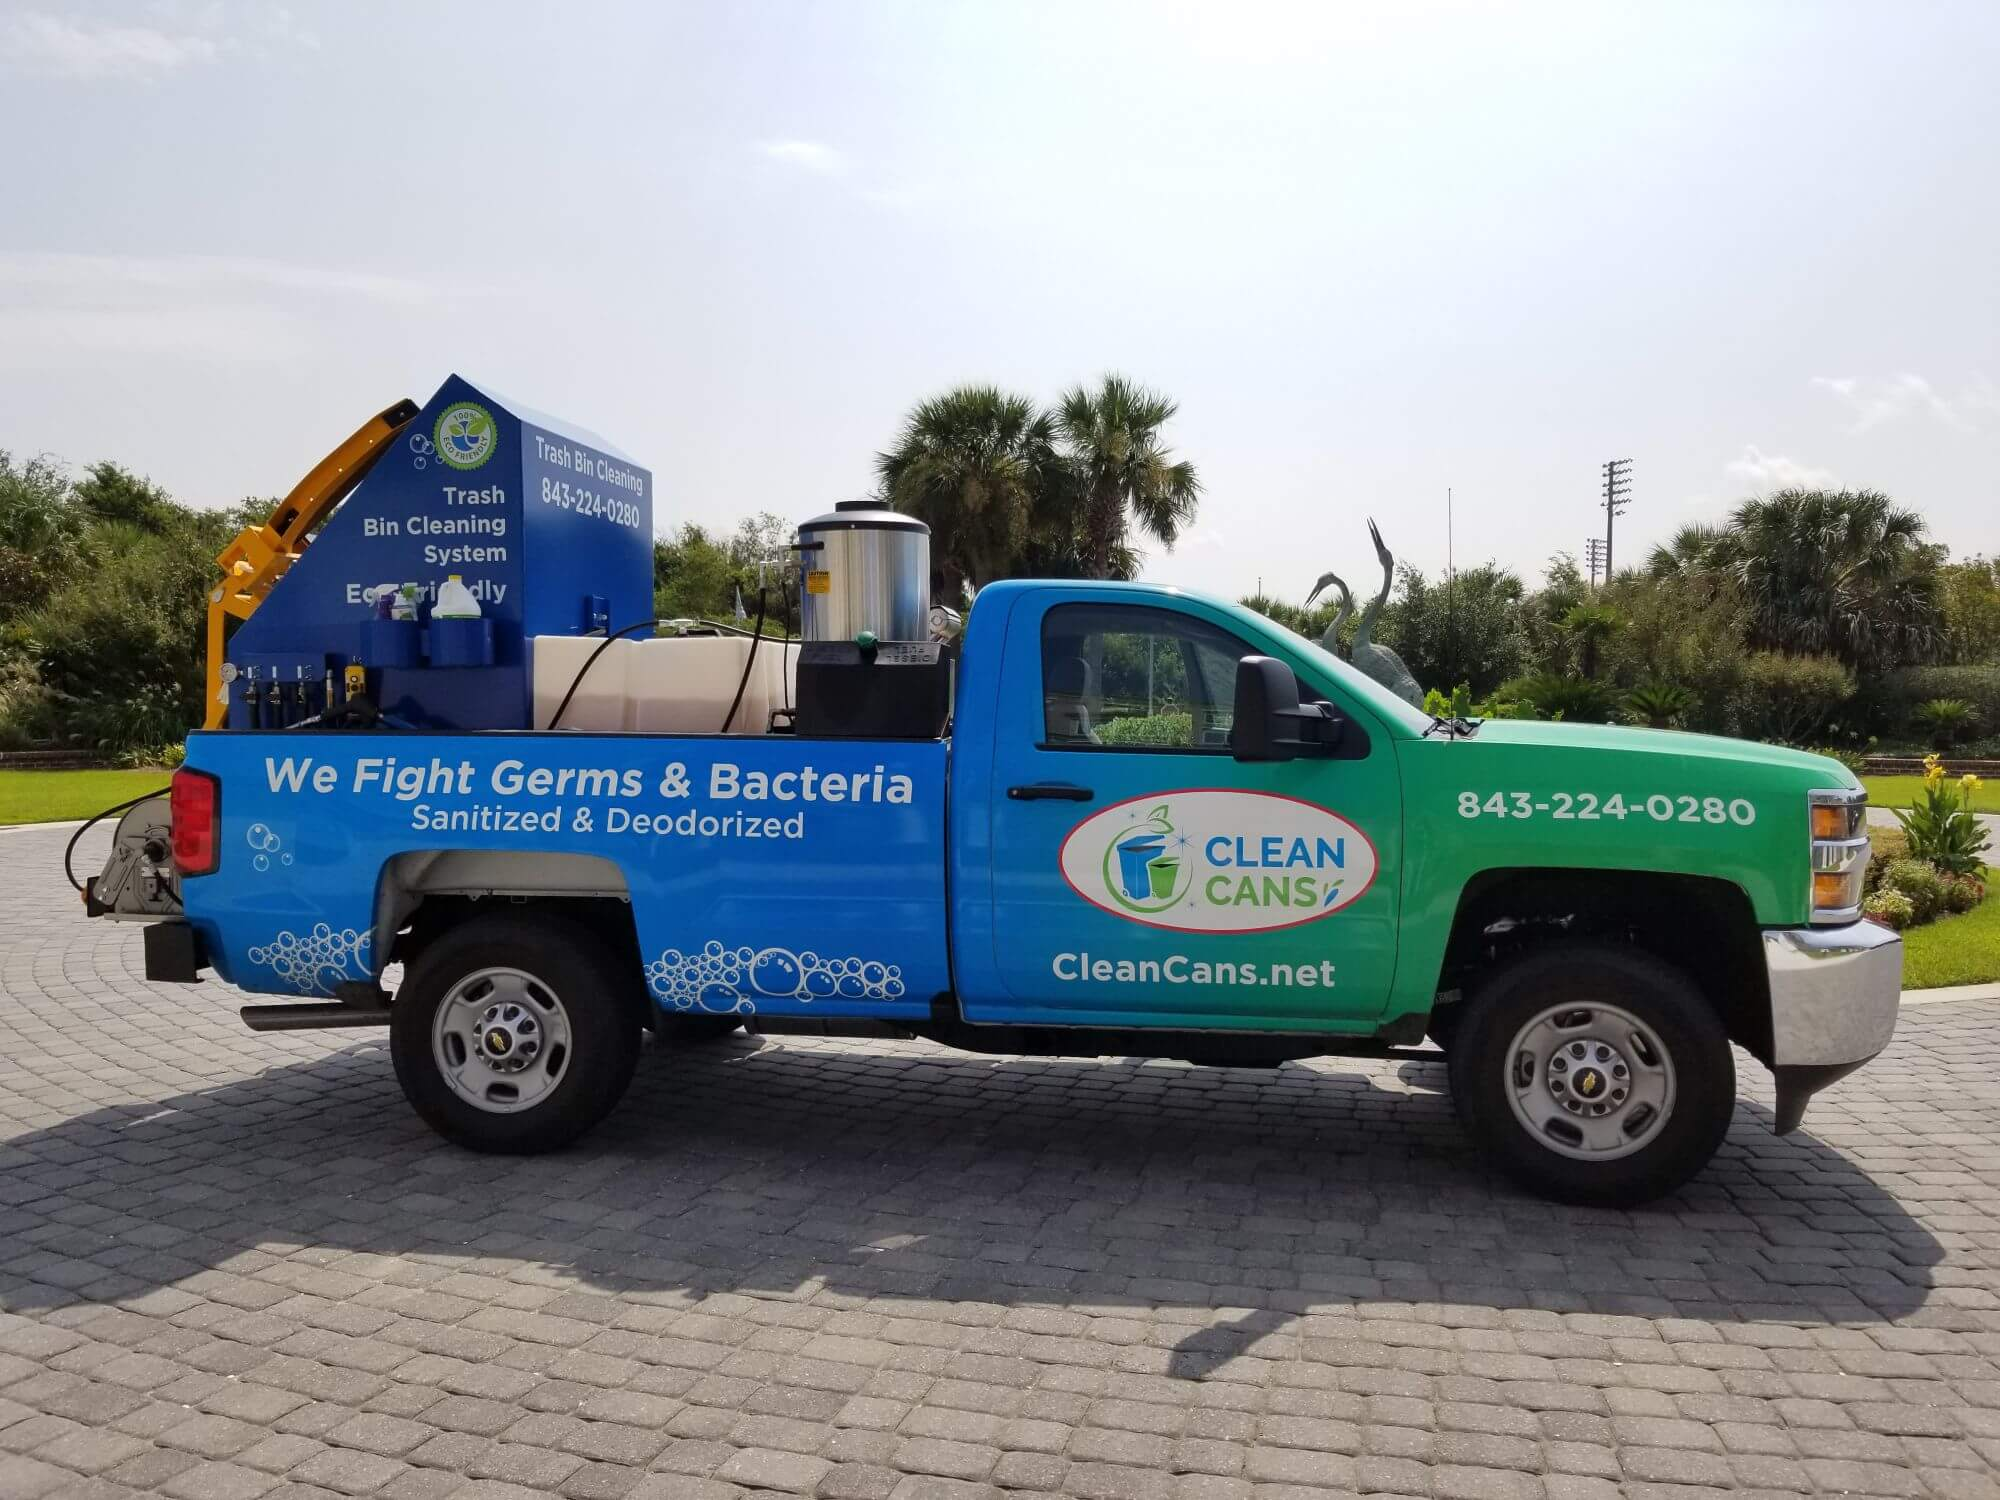 trash can cleaning, sanitize trash can, monthly can cleaning, clean cans, charleston trash can service